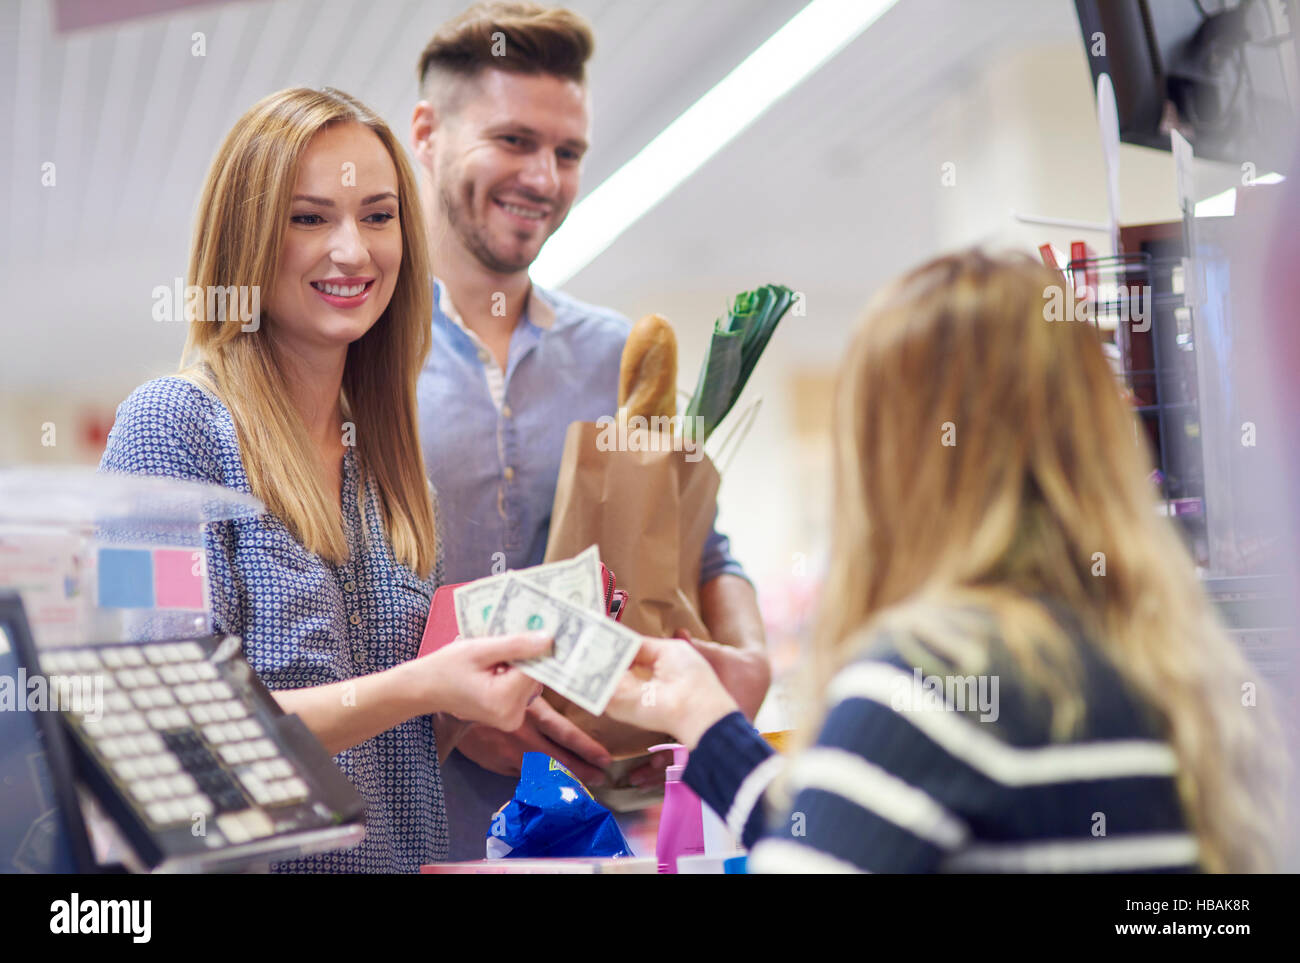 The last phase of shopping - Stock Image